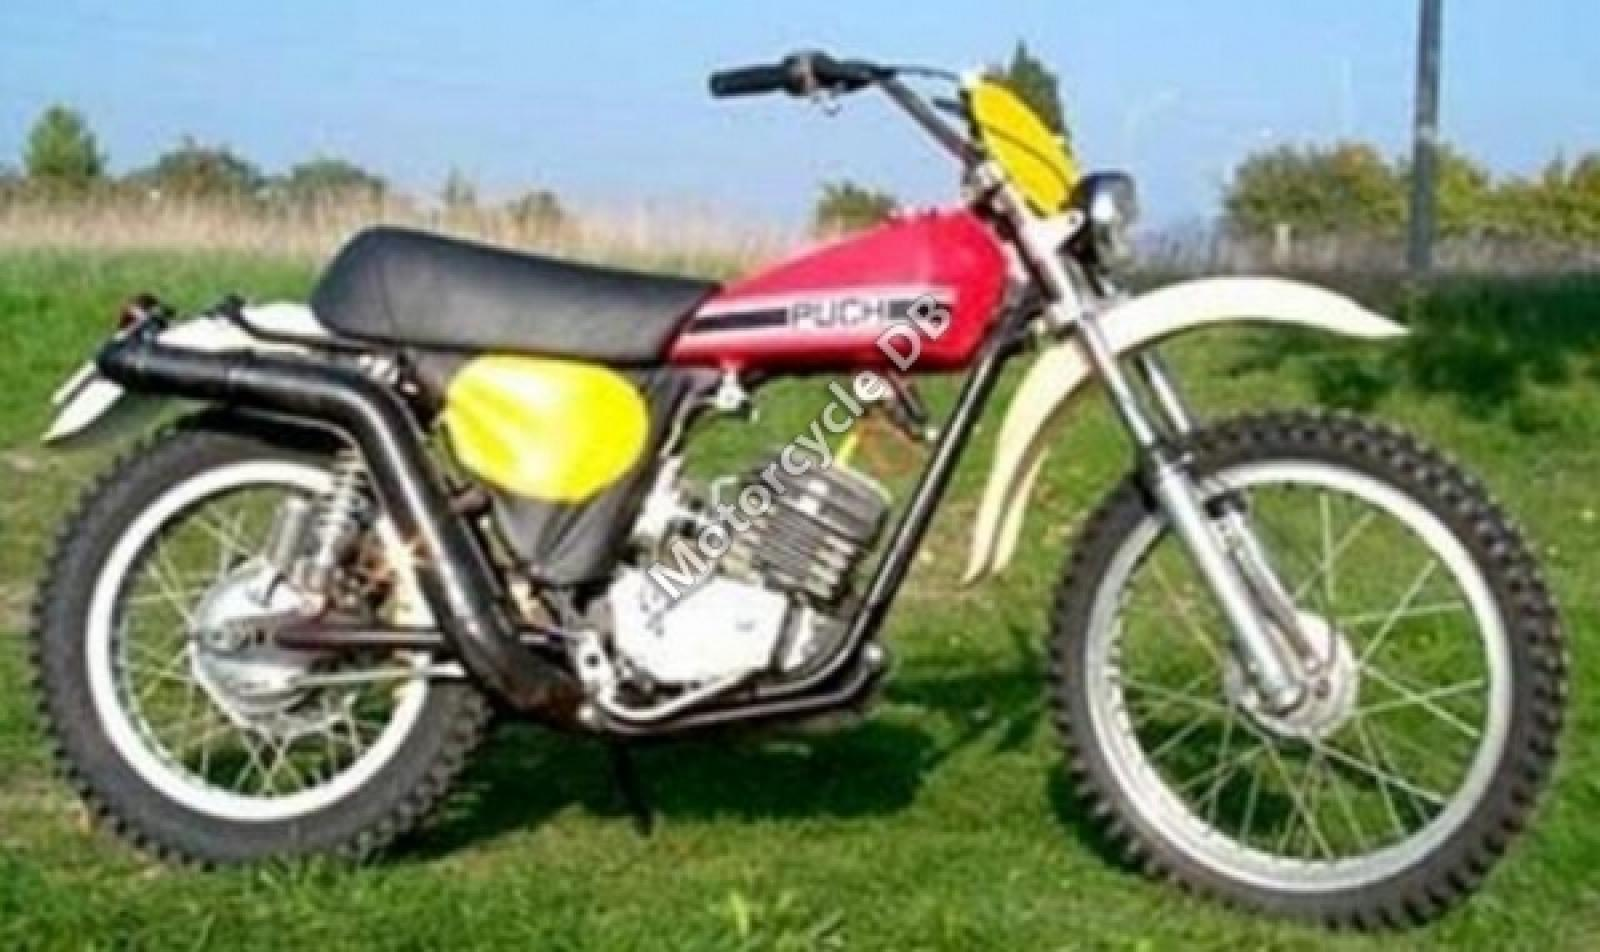 Puch GS 560 F 4 T 1988 images #121594